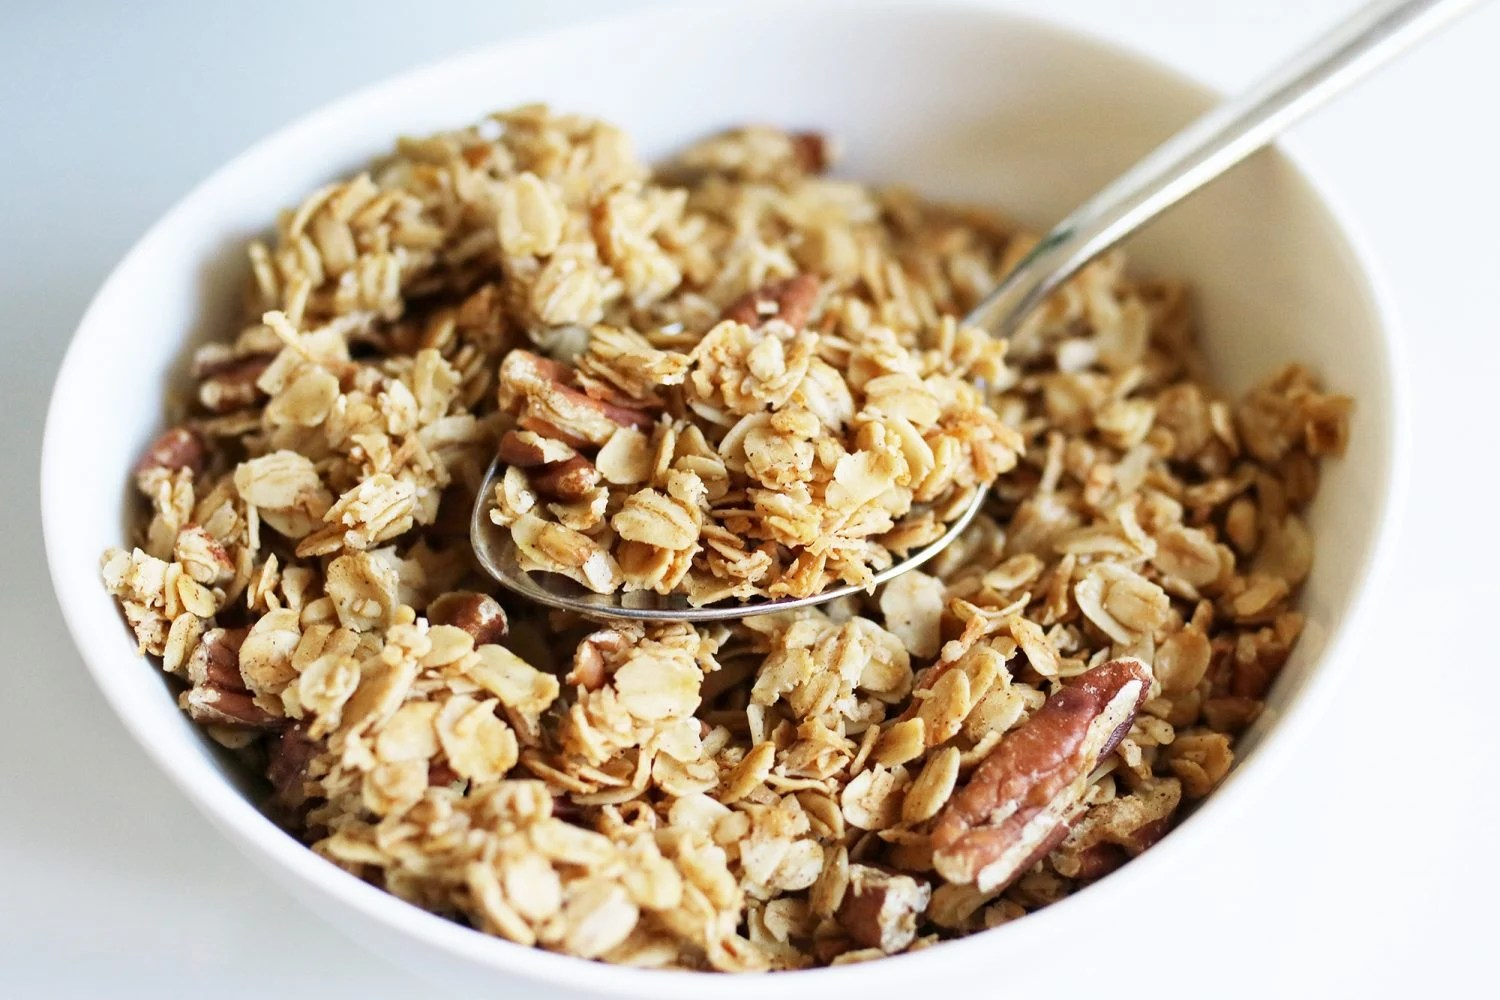 Easy vegan granola recipe the super mom life vegan granola granola recipe vegan granola recipe how to make granola healthy ccuart Choice Image